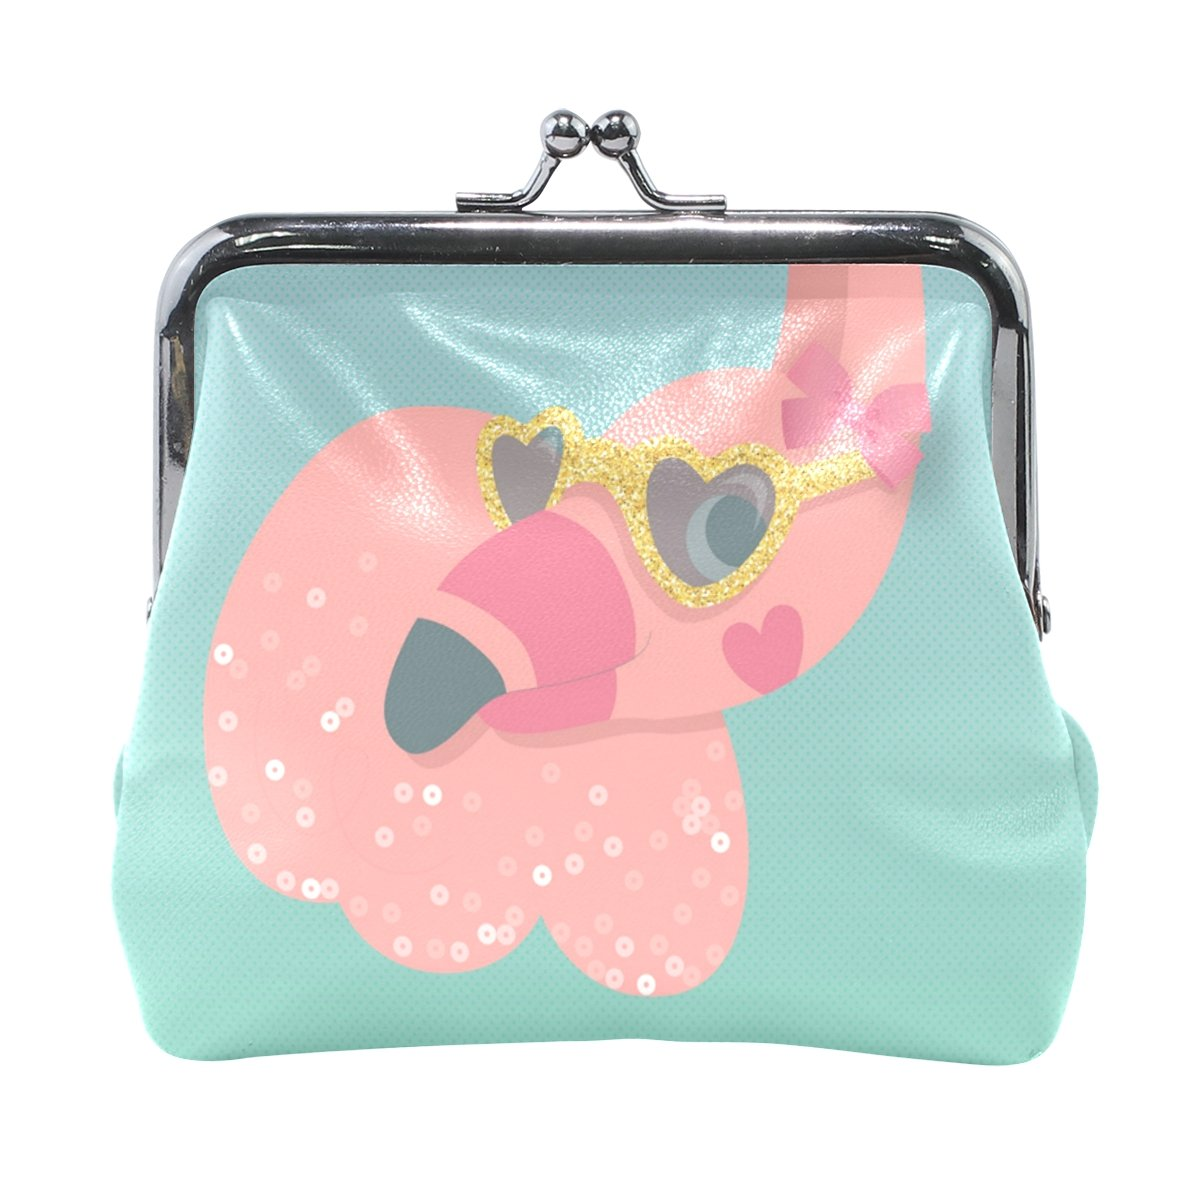 Ethel Ernest Pink Peacock With Sunglasses Coin Wallets Mini Purse for Womens Girls